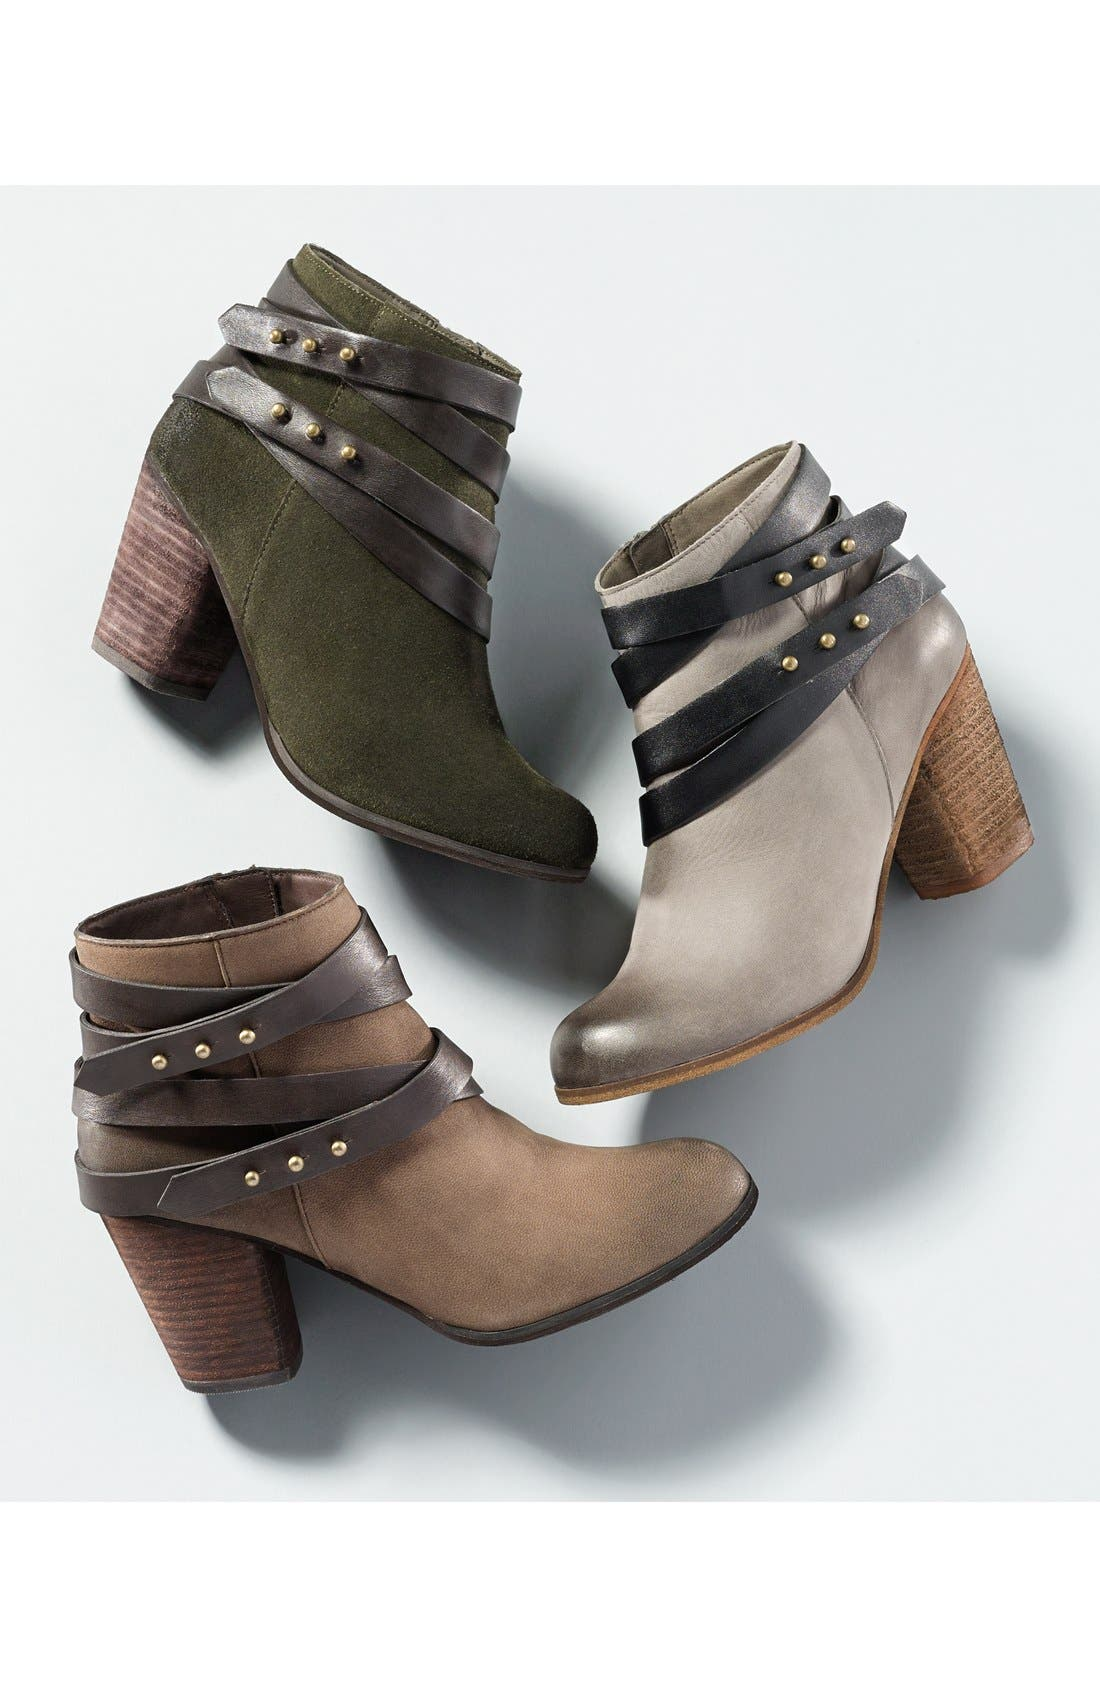 'Train' Wrap Belted Bootie,                             Alternate thumbnail 2, color,                             218